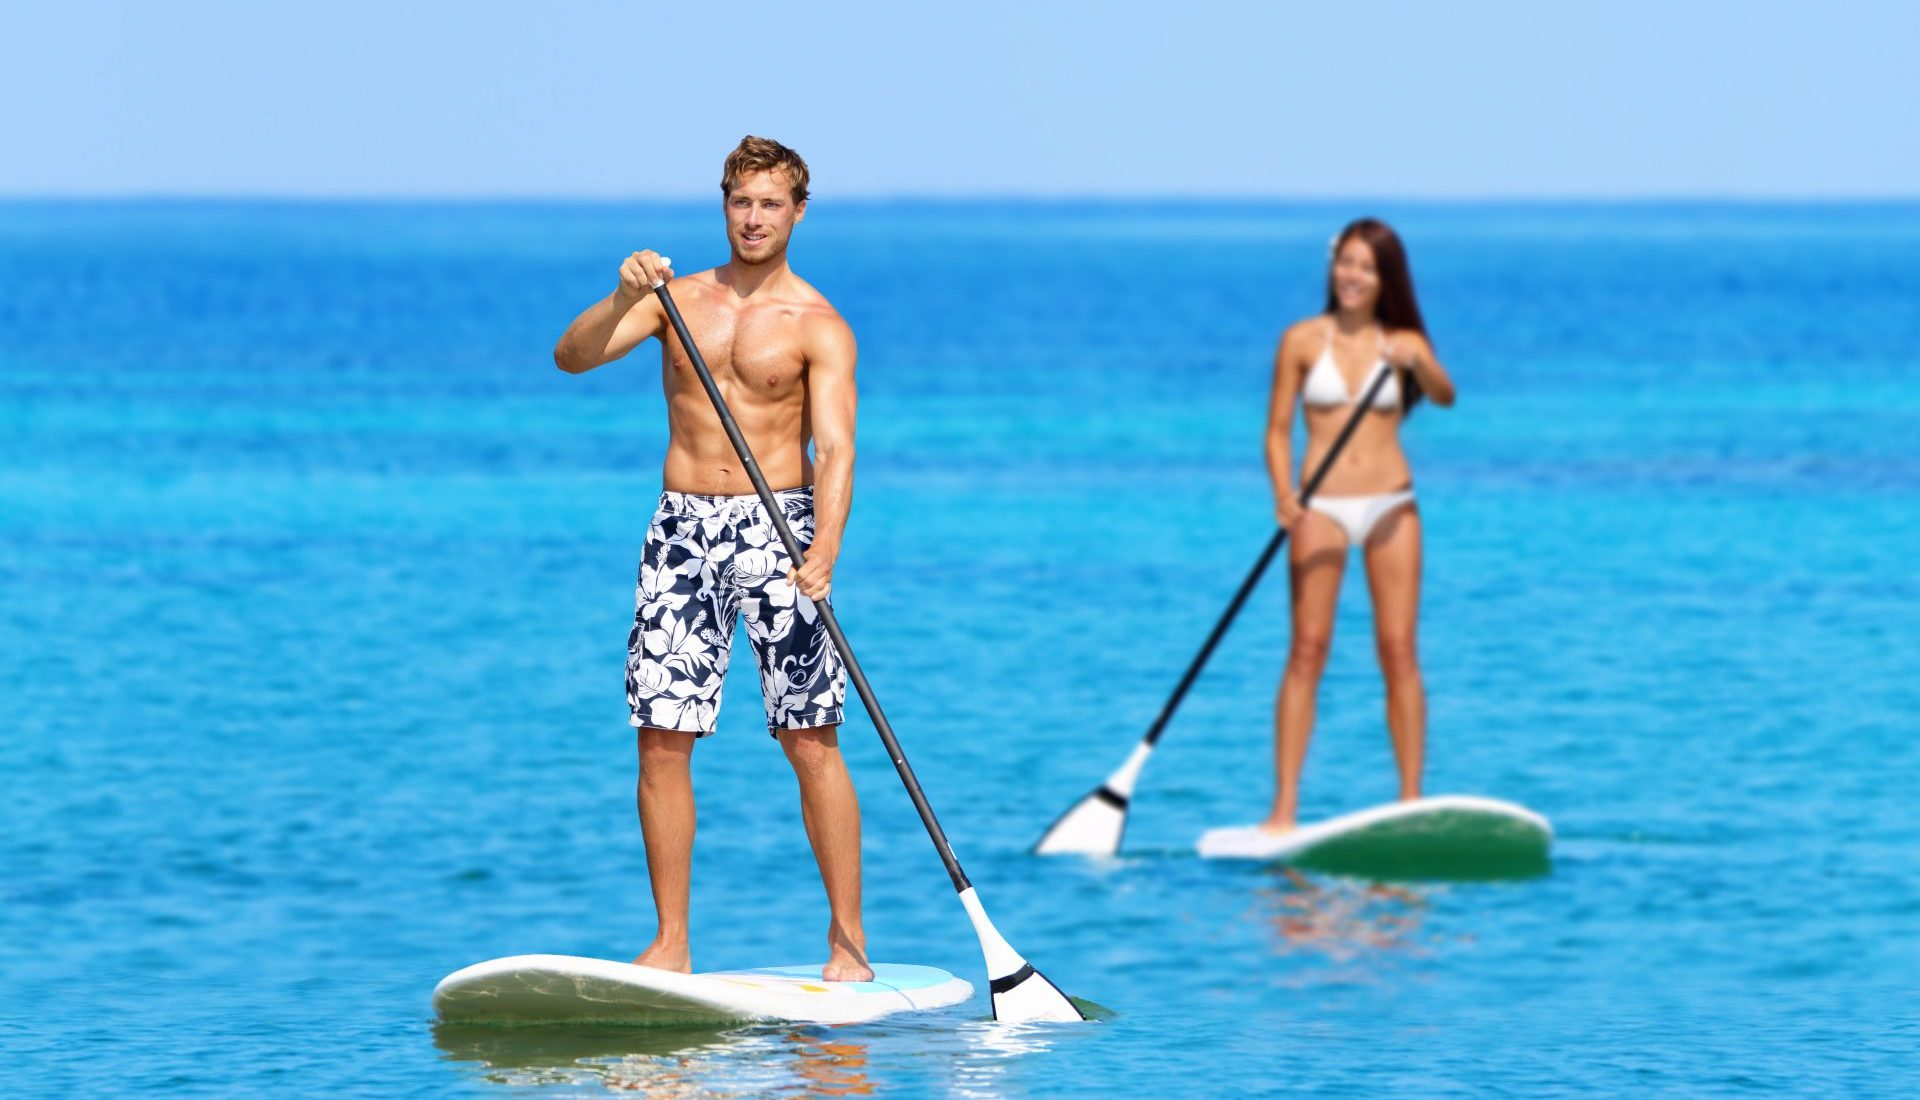 Stand up paddle individuel